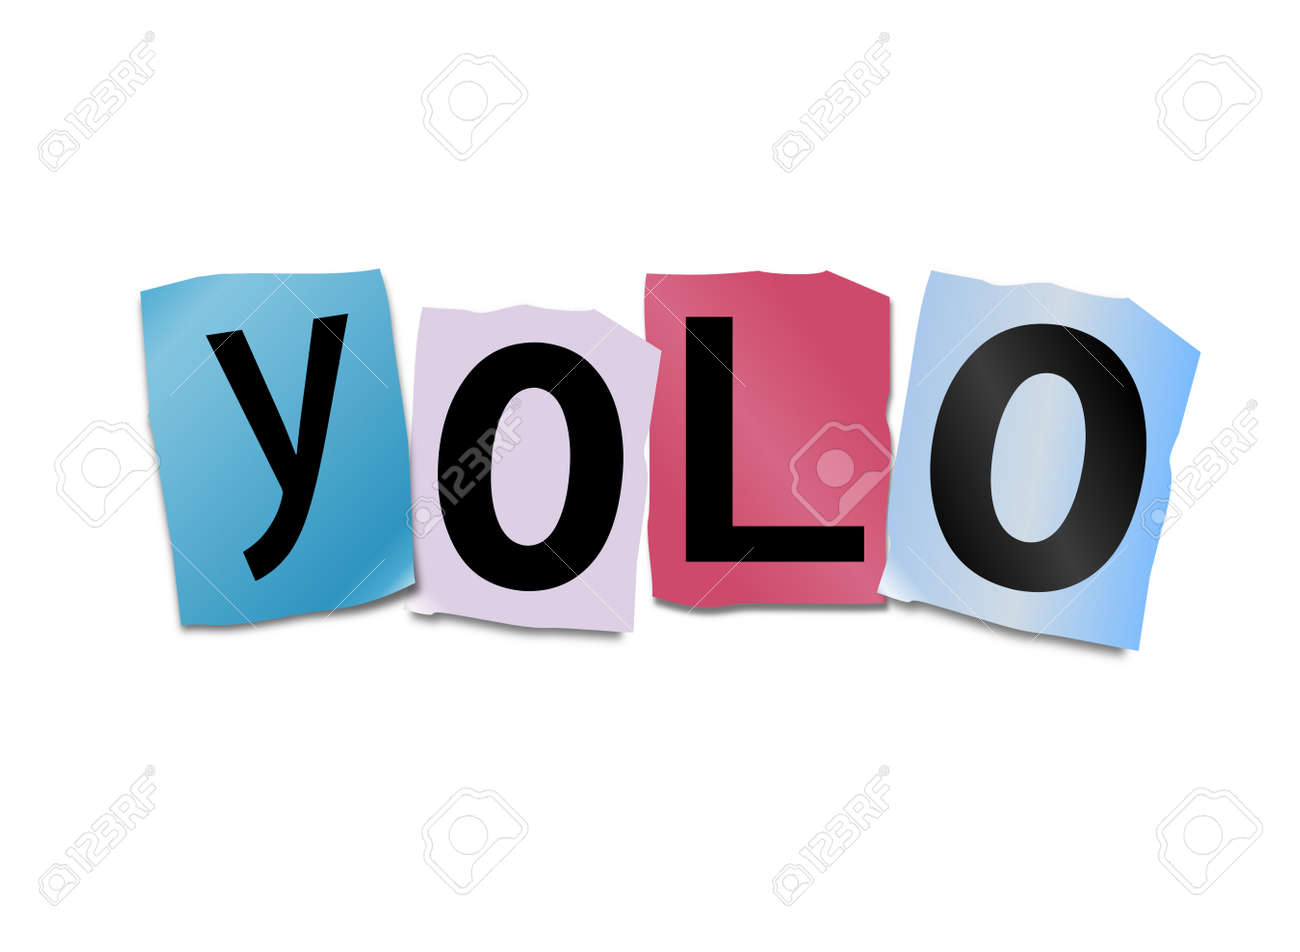 illustration illustration depicting cutout printed letters arranged to form the word yolo